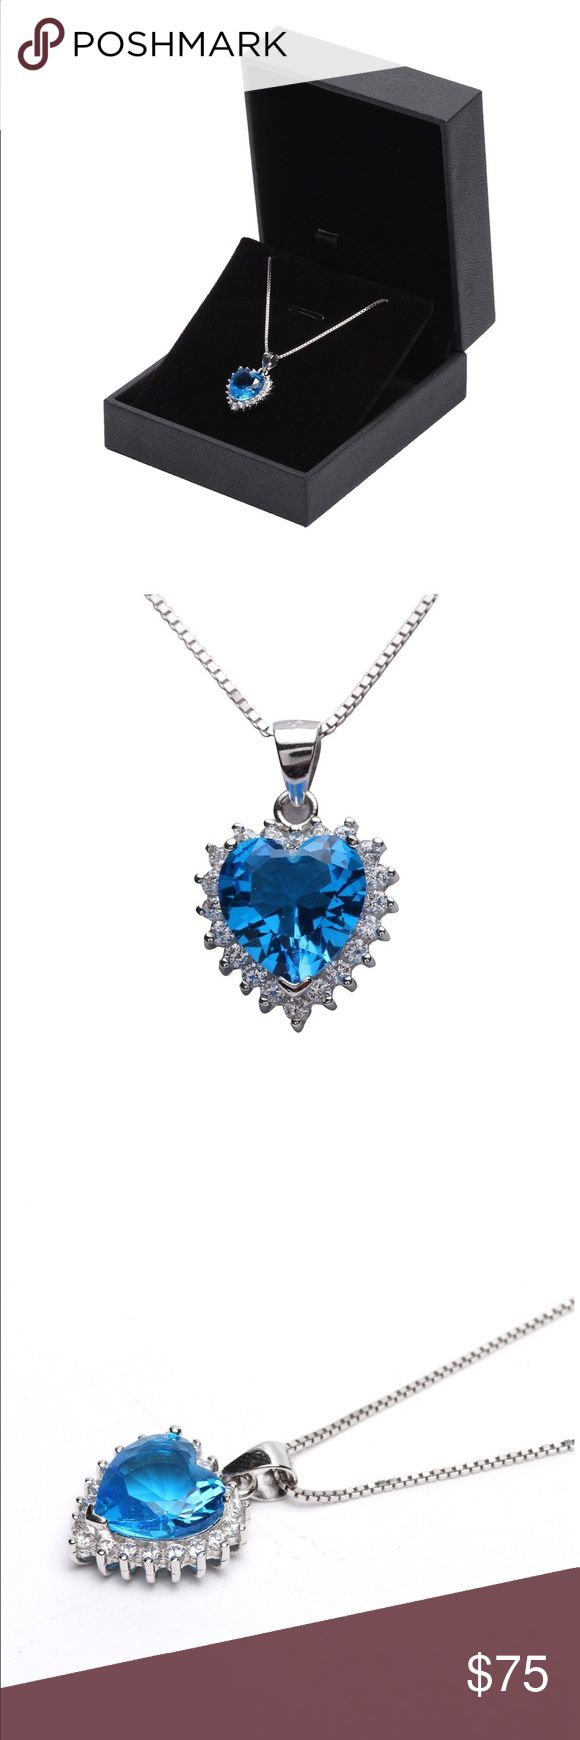 Heart of the ocean necklace silver brand new Pendant size: 0.65 inch WIDTH * 0.85 inch HEIGHT Box chain with lobster clasp Length of the chain: 18 inch (45cm) Pendant and chain both are silver, plated with rhodium (a member of the platinum group). Jewelry Necklaces